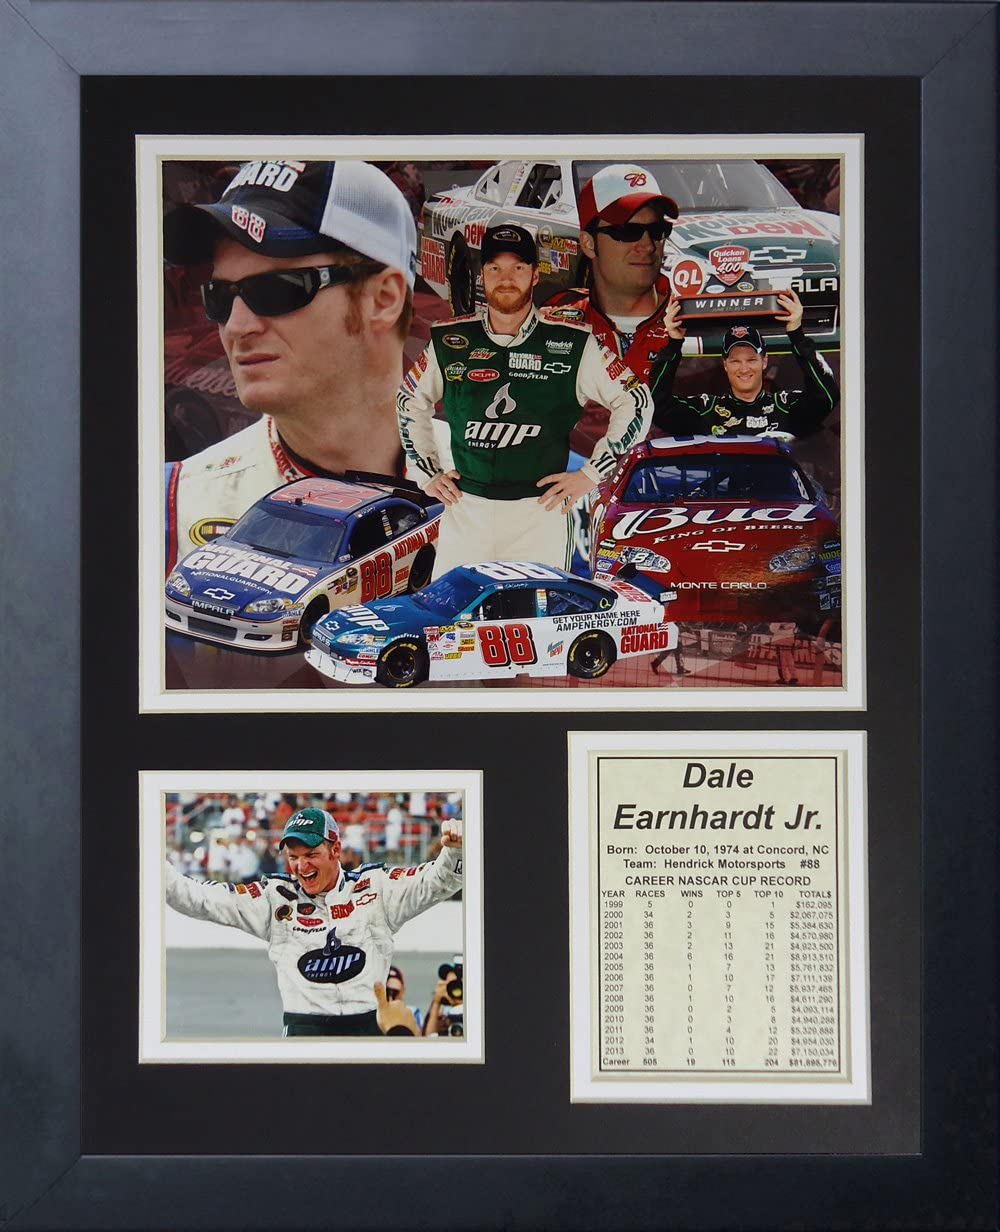 Framed Photo Collage 11 x 14-Inch Legends Never Die Dale Earnhardt Jr